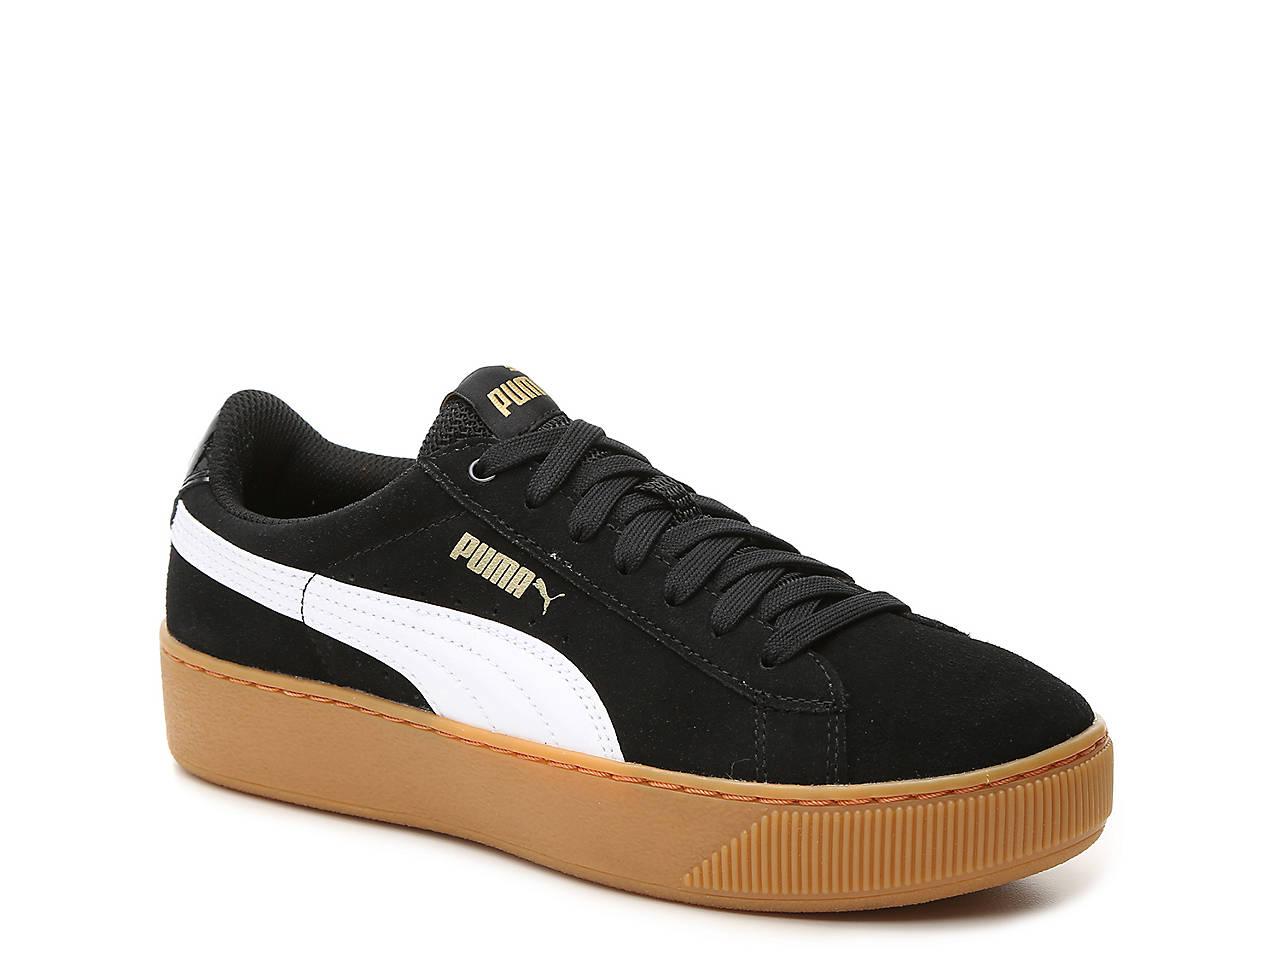 18ae77ab31883d Puma Vikky Platform Sneaker - Women s Men s Shoes